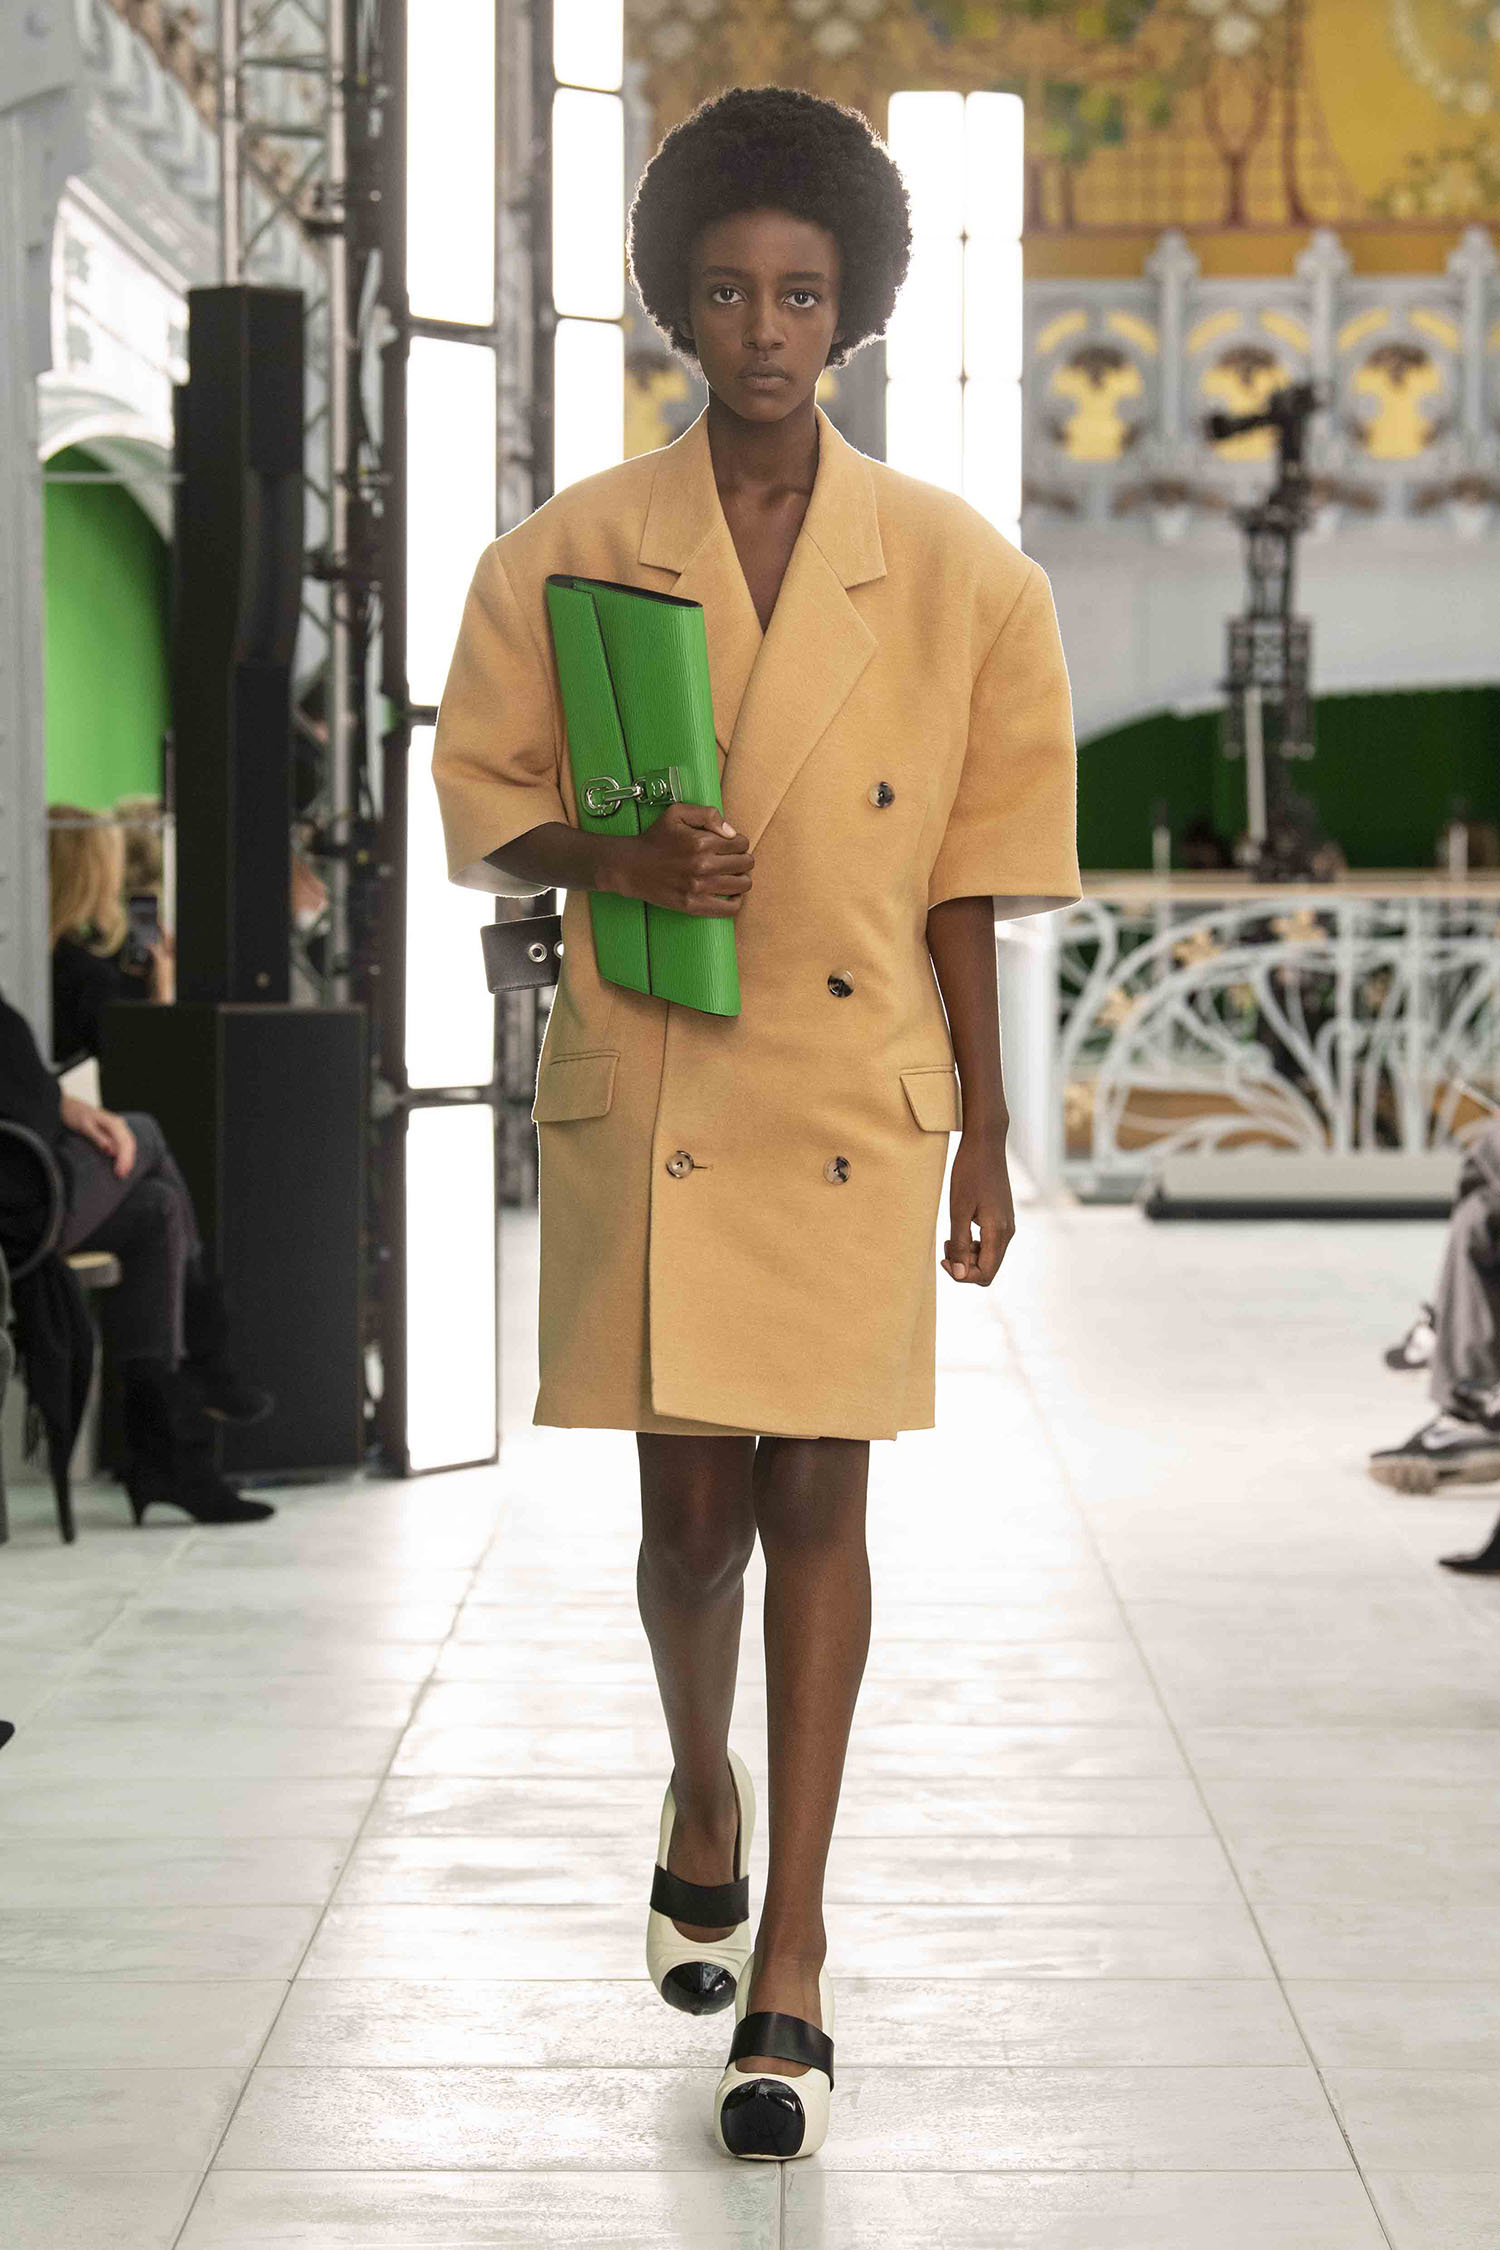 Louis Vuitton's Spring/Summer 2021 collection endorses androgyny